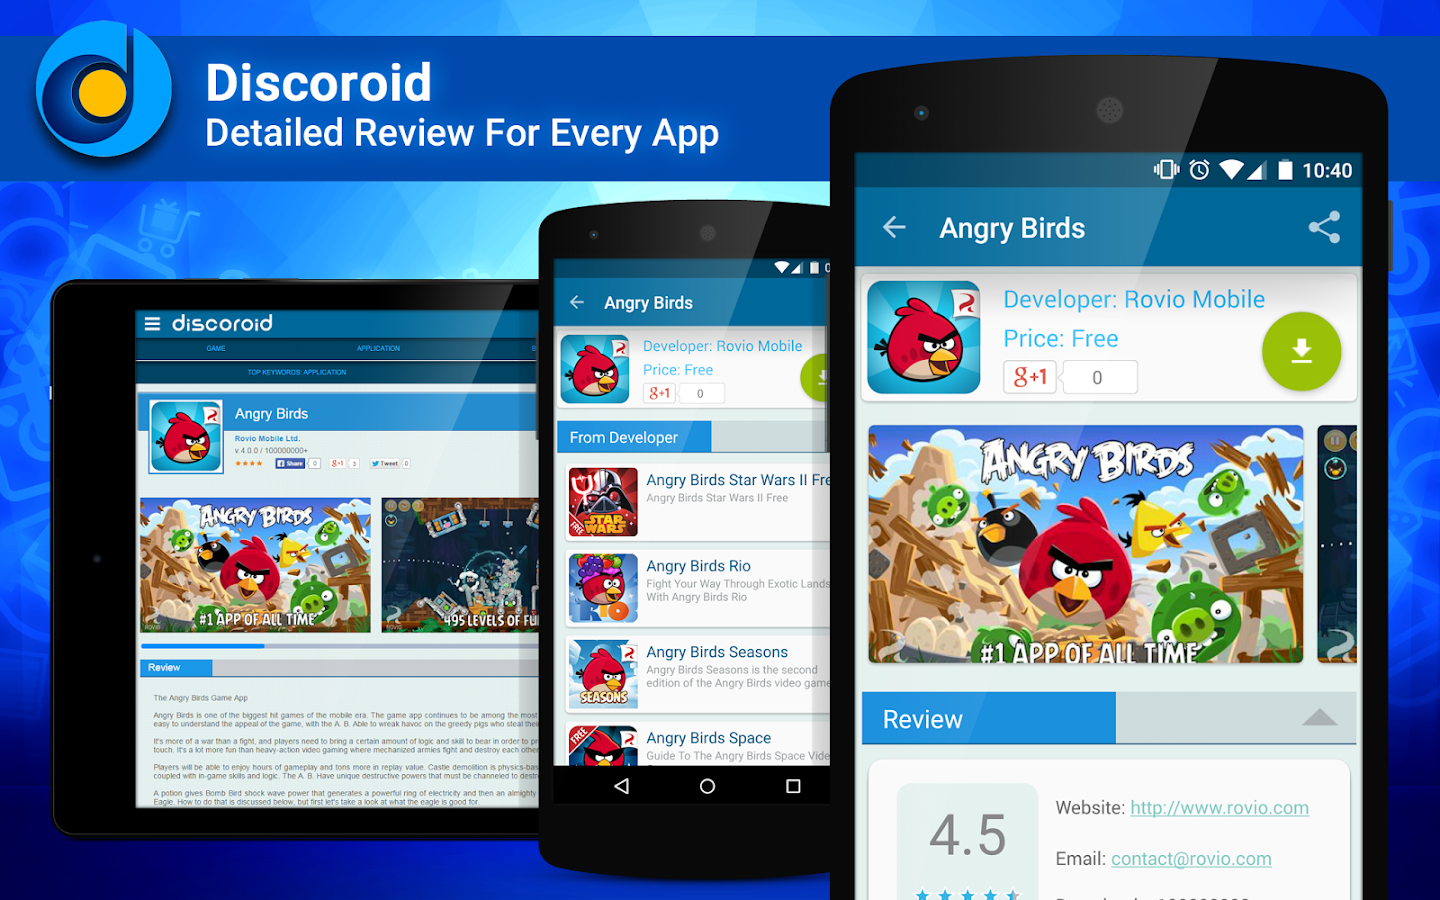 Discover Android - Discoroid- screenshot